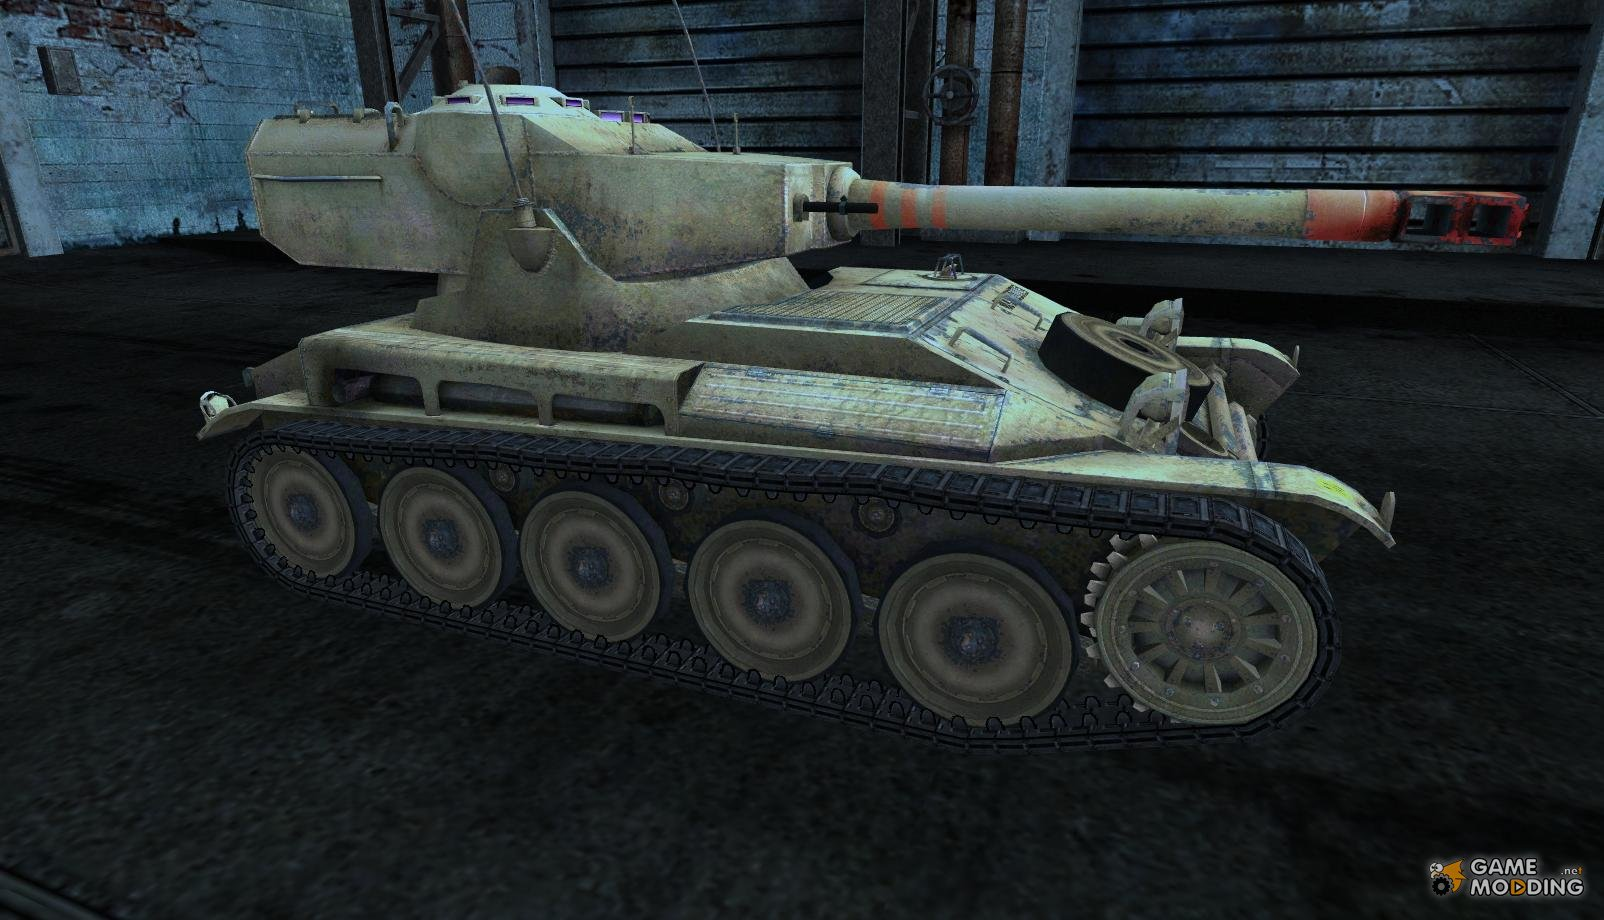 wot amx 12t matchmaking Though top speed is high, the amx 12t has poor acceleration, forcing it to play the amx 12 t leads to the amx 13 f3 am, and the amx 13 75.